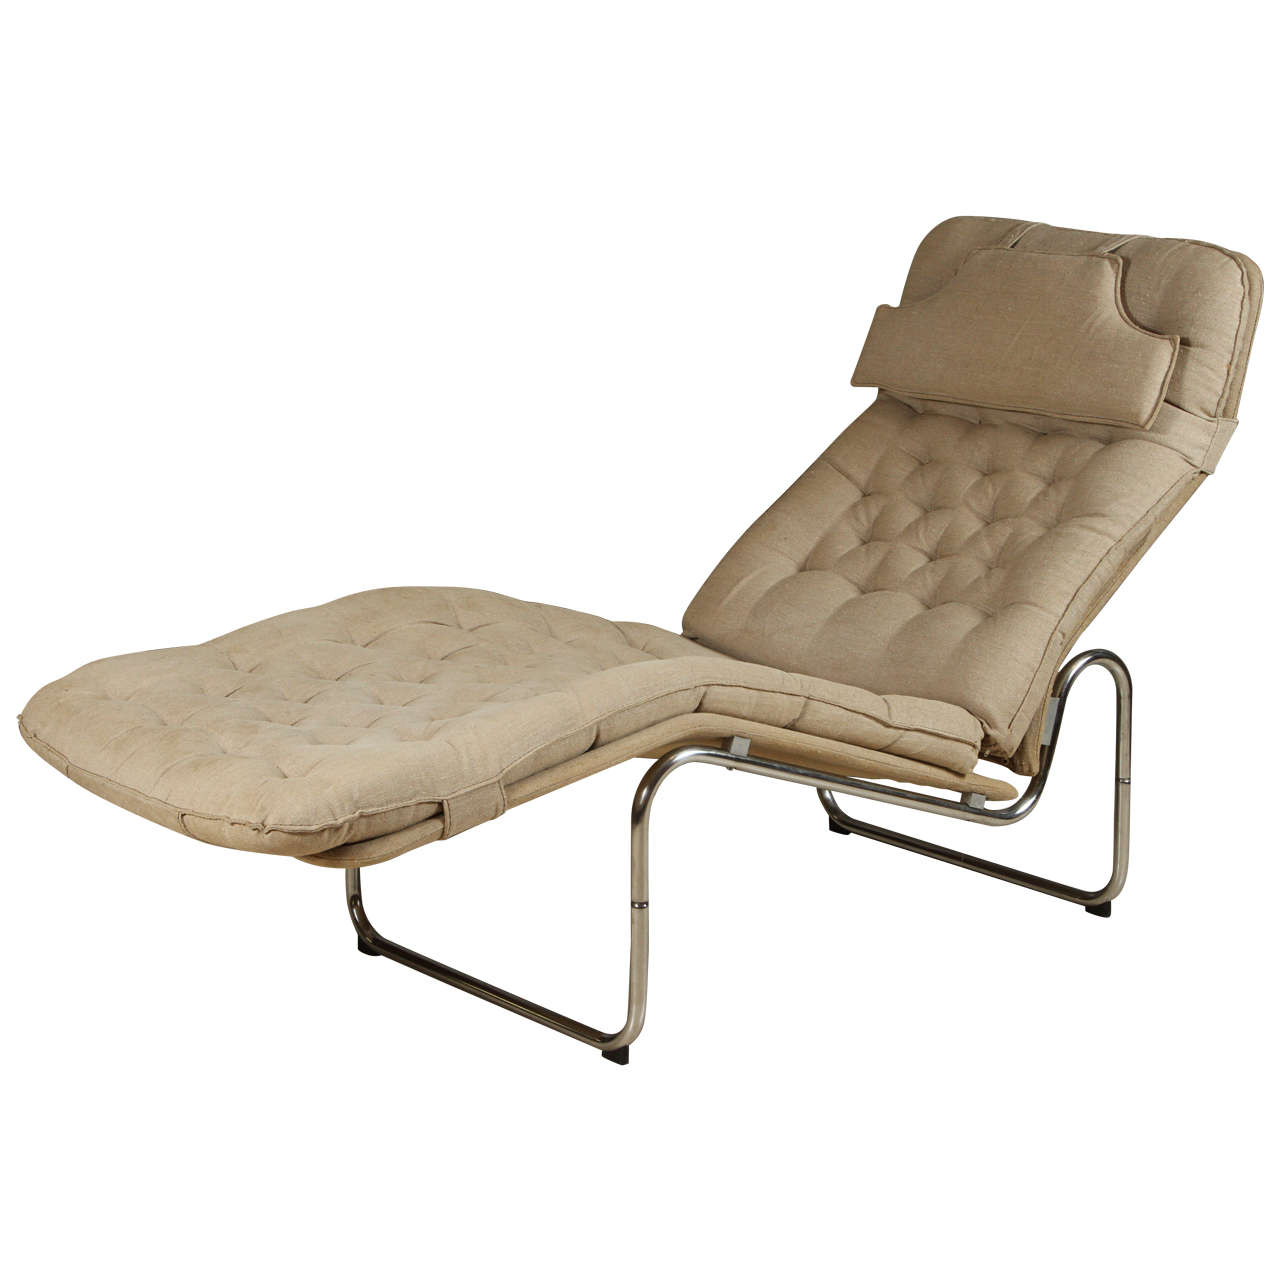 Chaise original - Chaise louis ghost pas cher ...